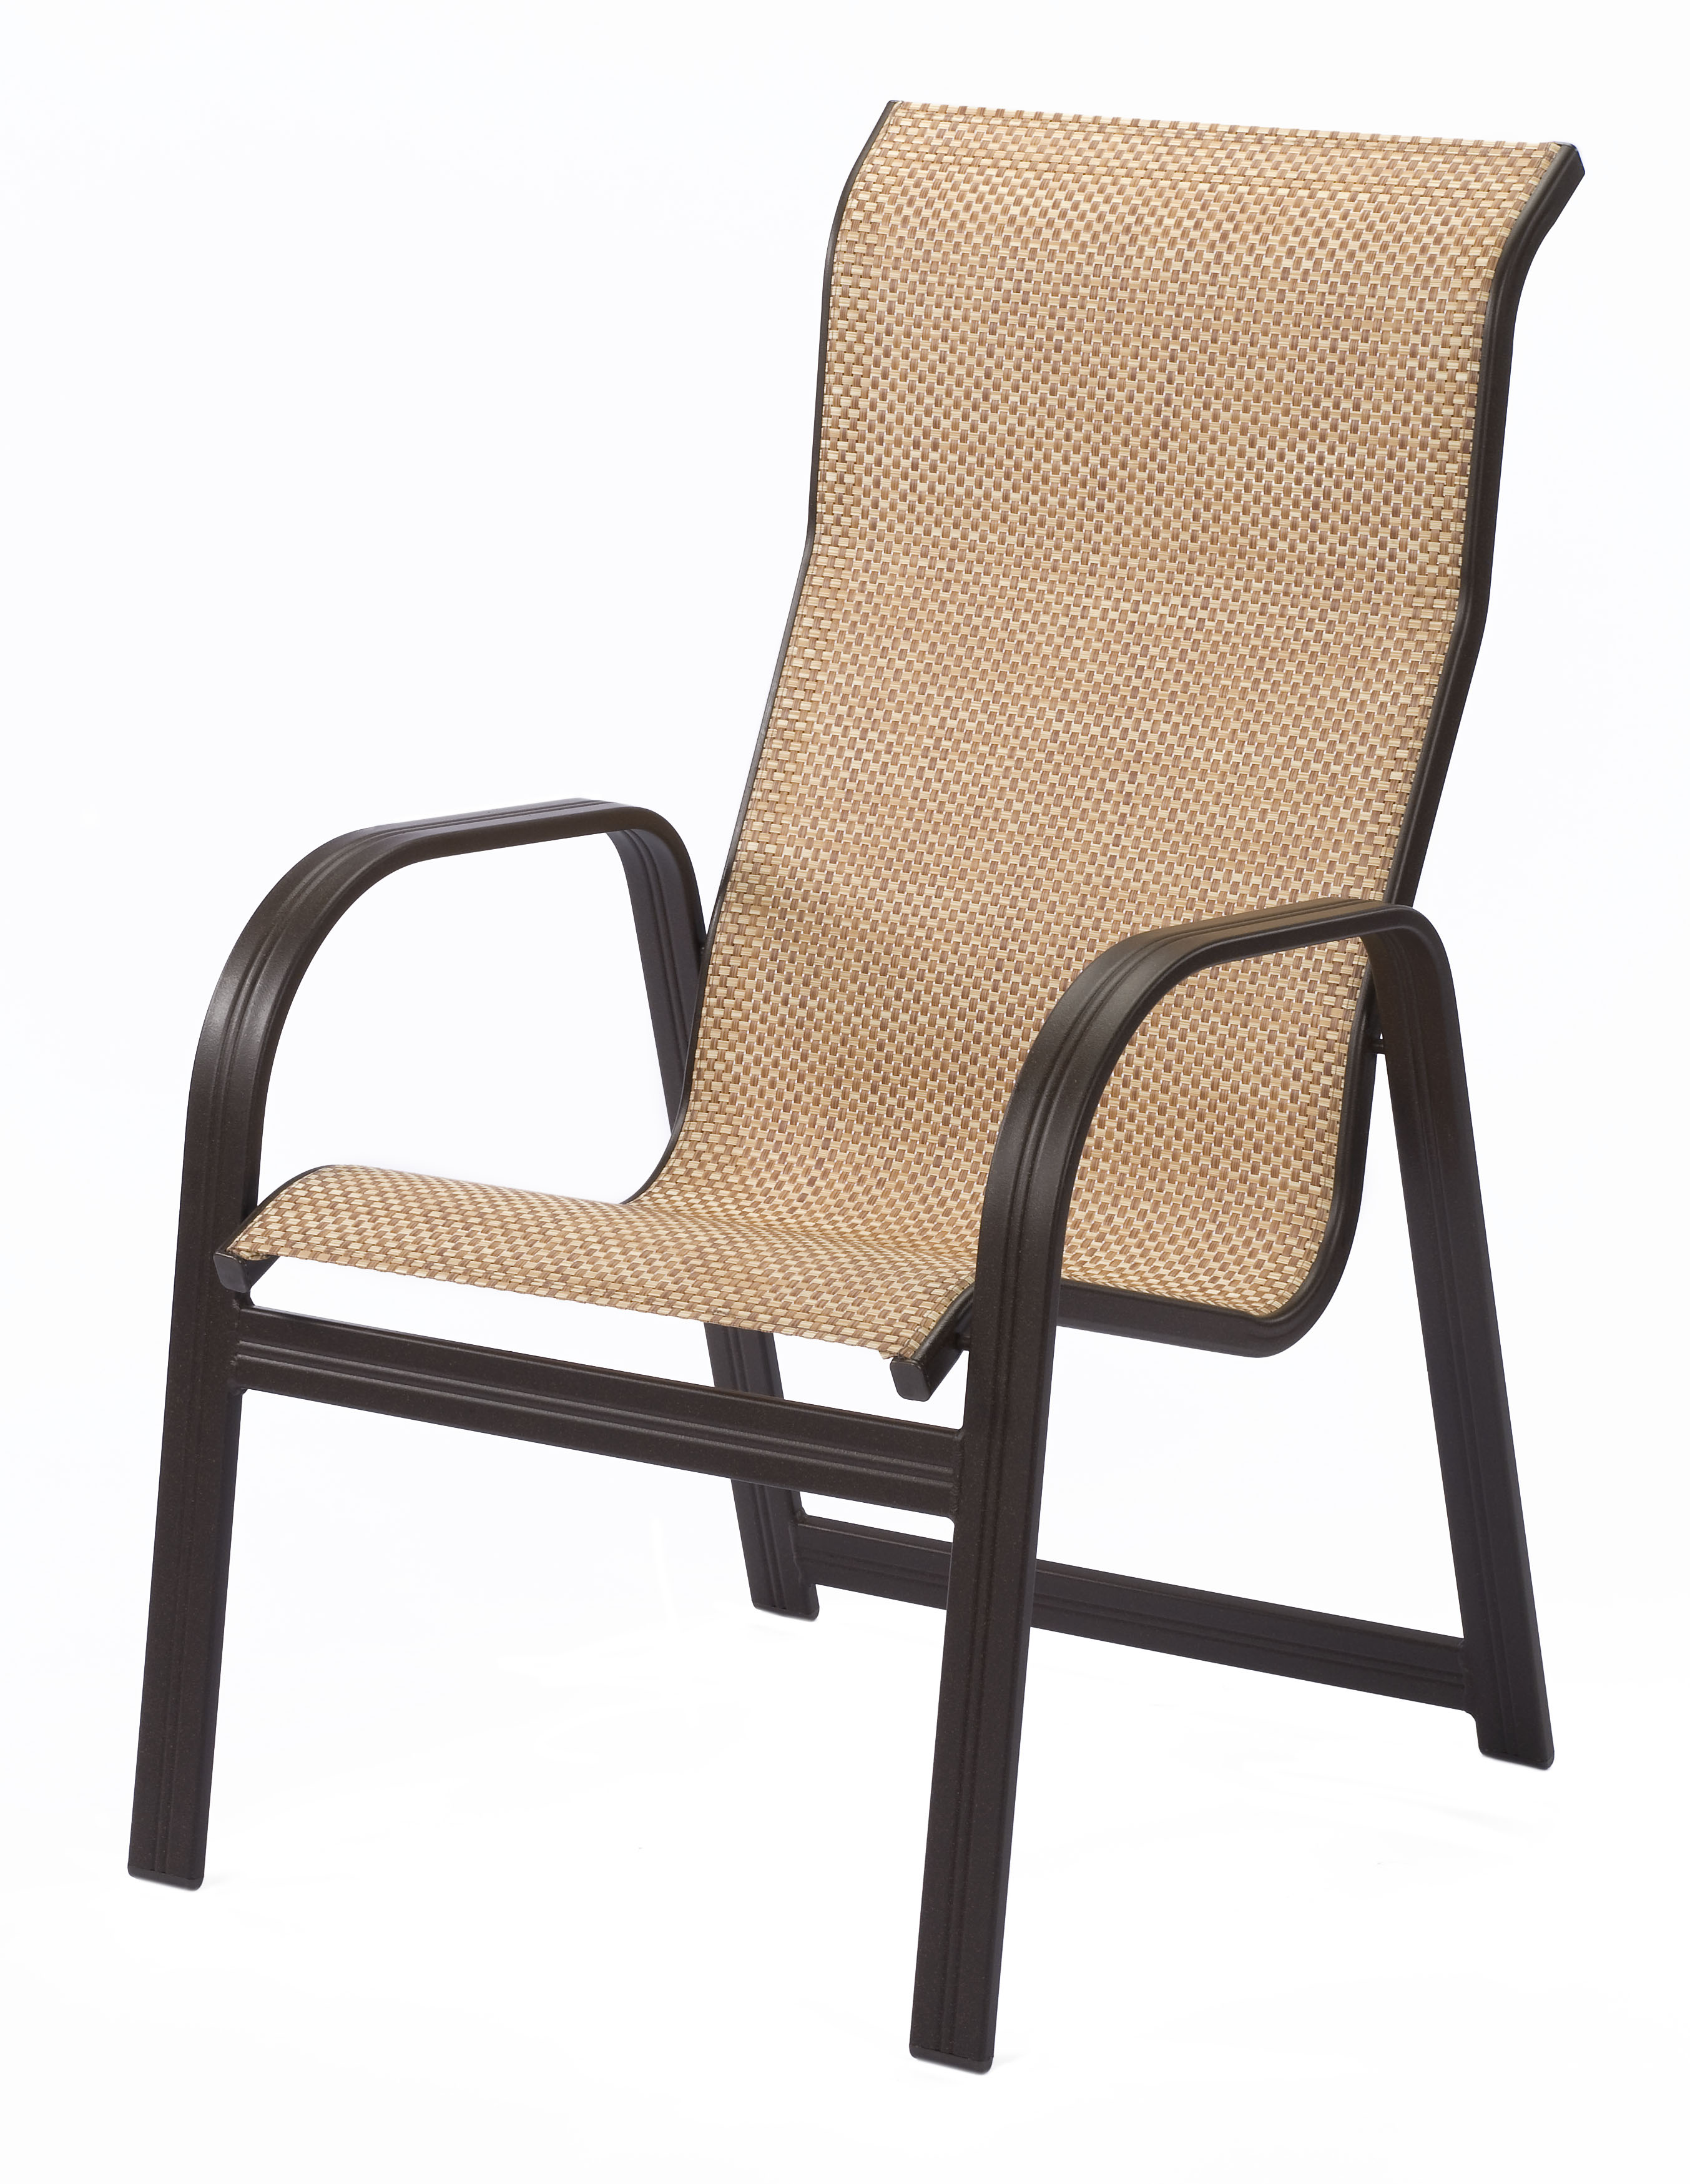 sc 1 st  ETu0026T Distributors & Cabo Sling High Back Aluminum Dining Arm Chair | ETu0026T Distributors